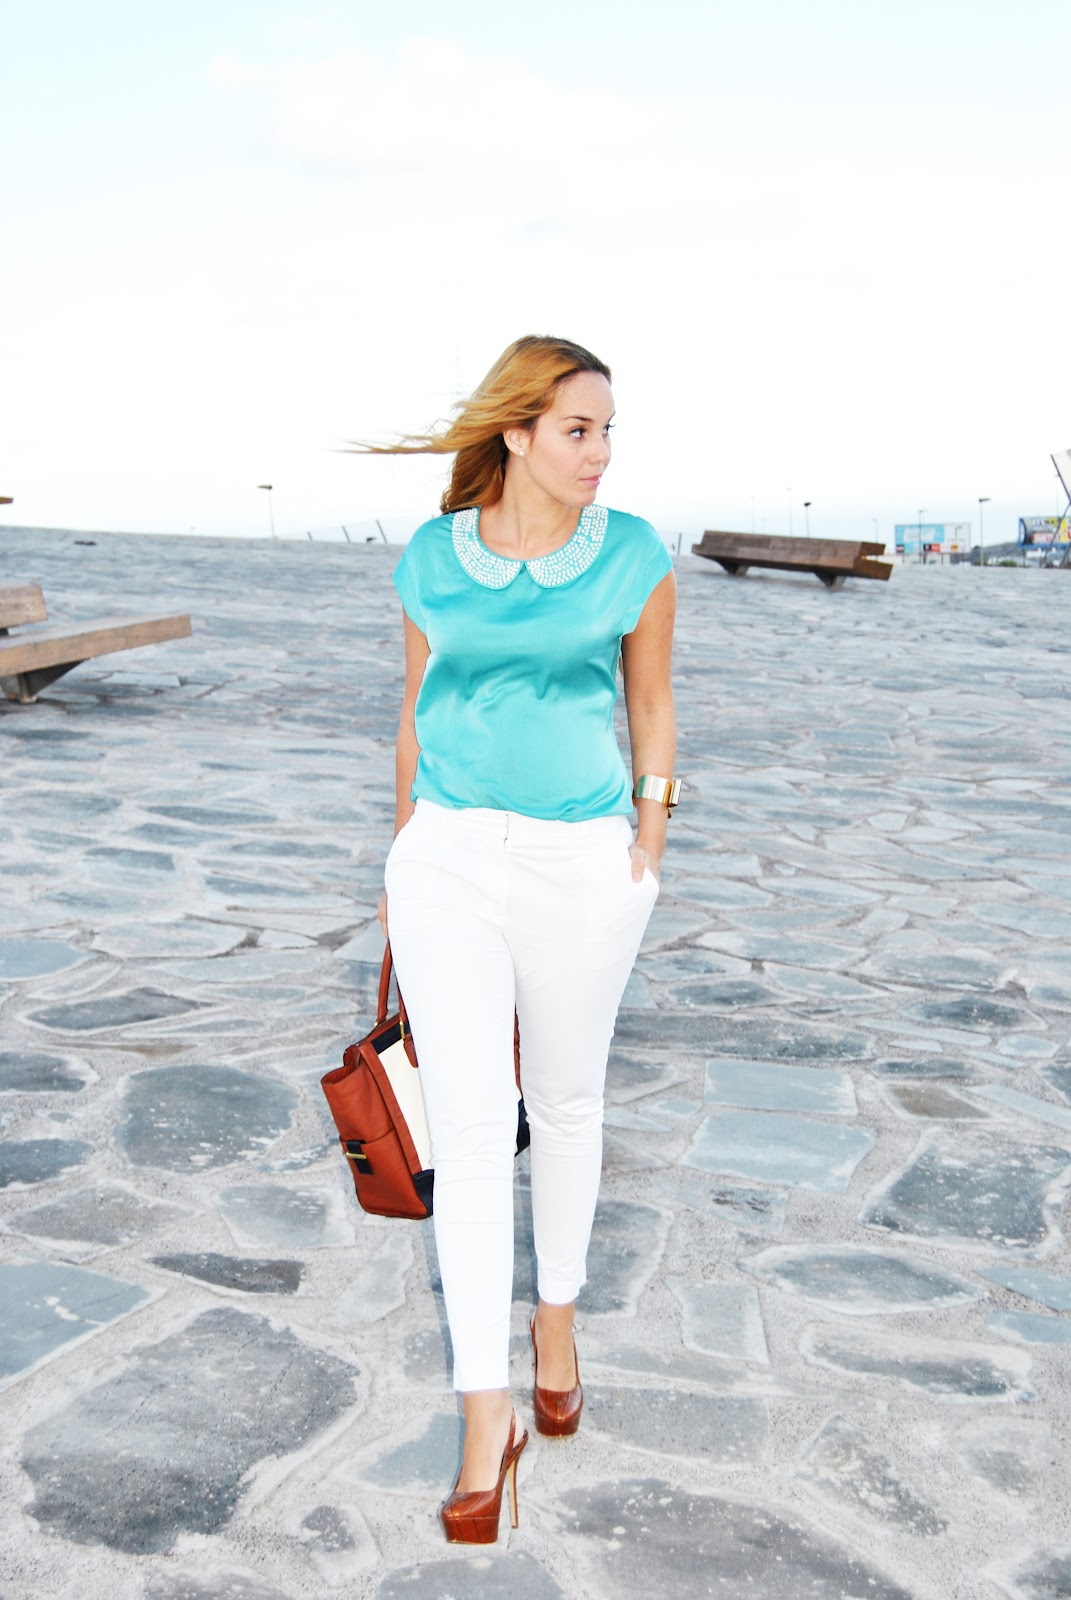 nery hdez, pearls in blouse, white pants, camisa blanco con perlas